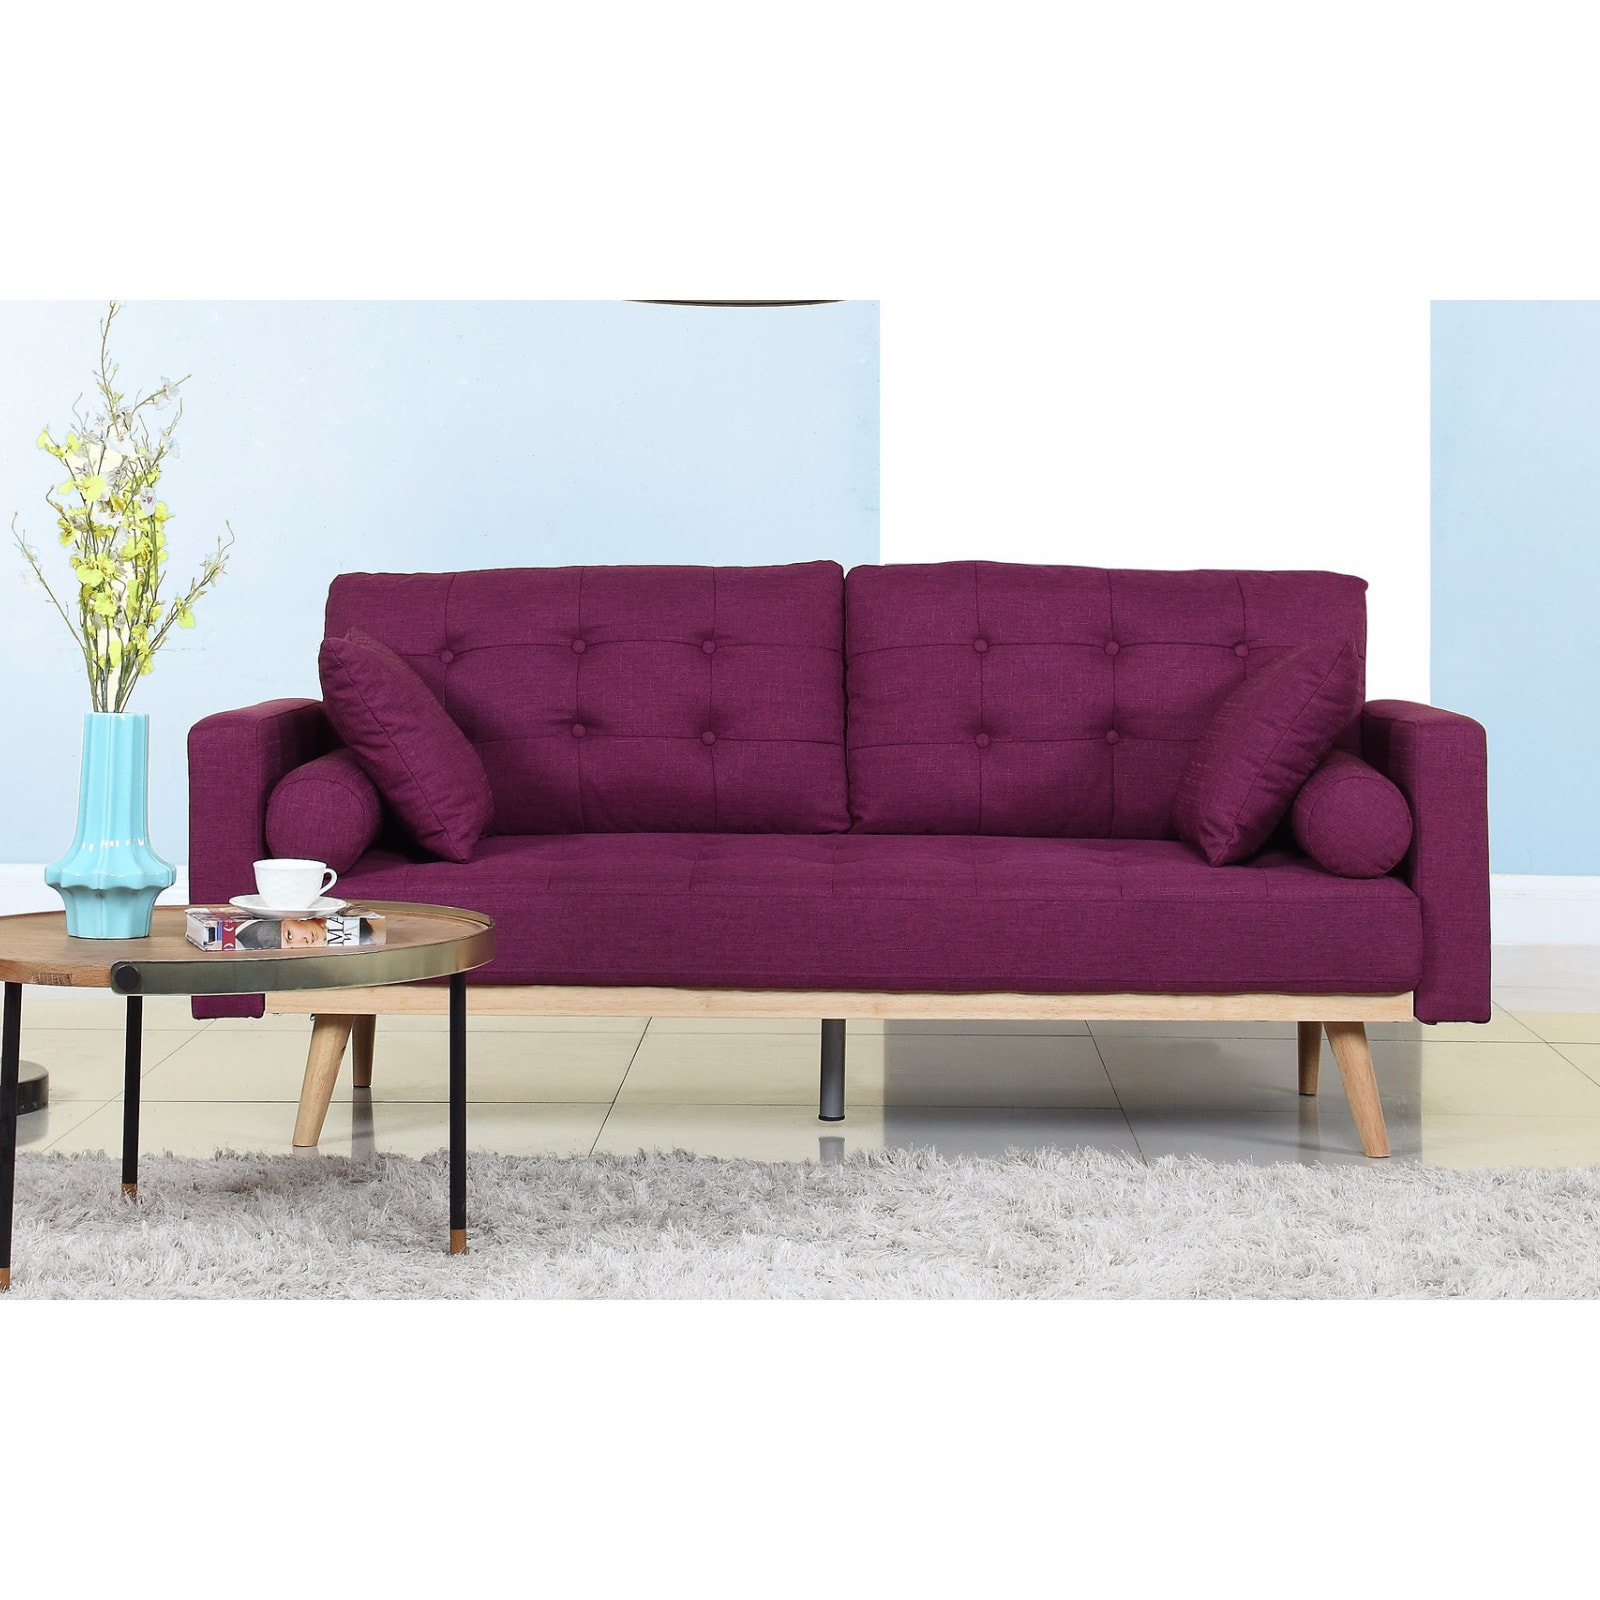 Madison Home Tufted Linen Mid-century Modern Sofa